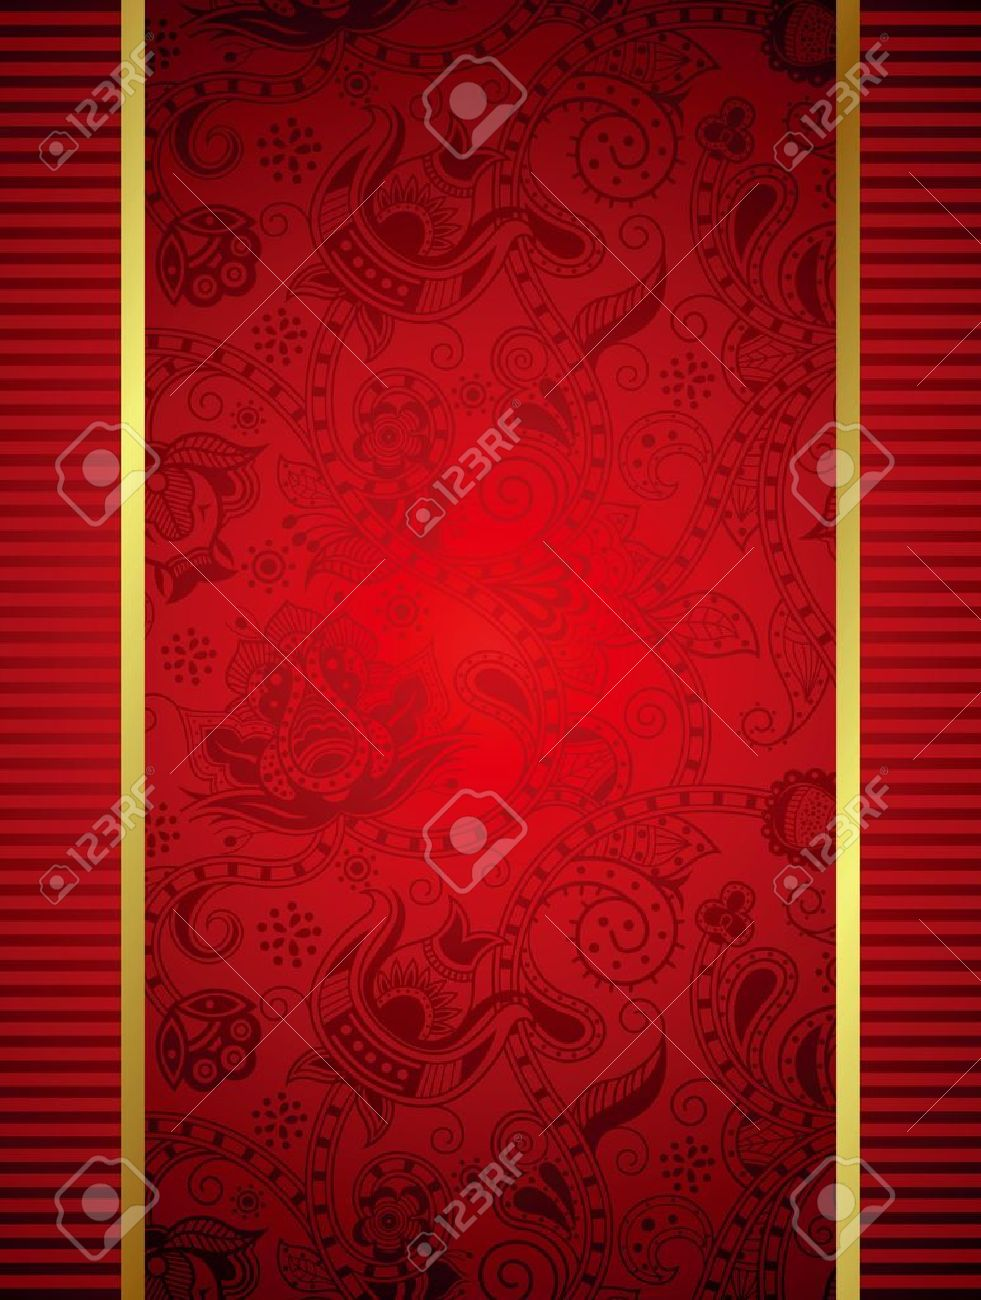 Abstract Red Frame with Floral Background Stock Vector - 14843514